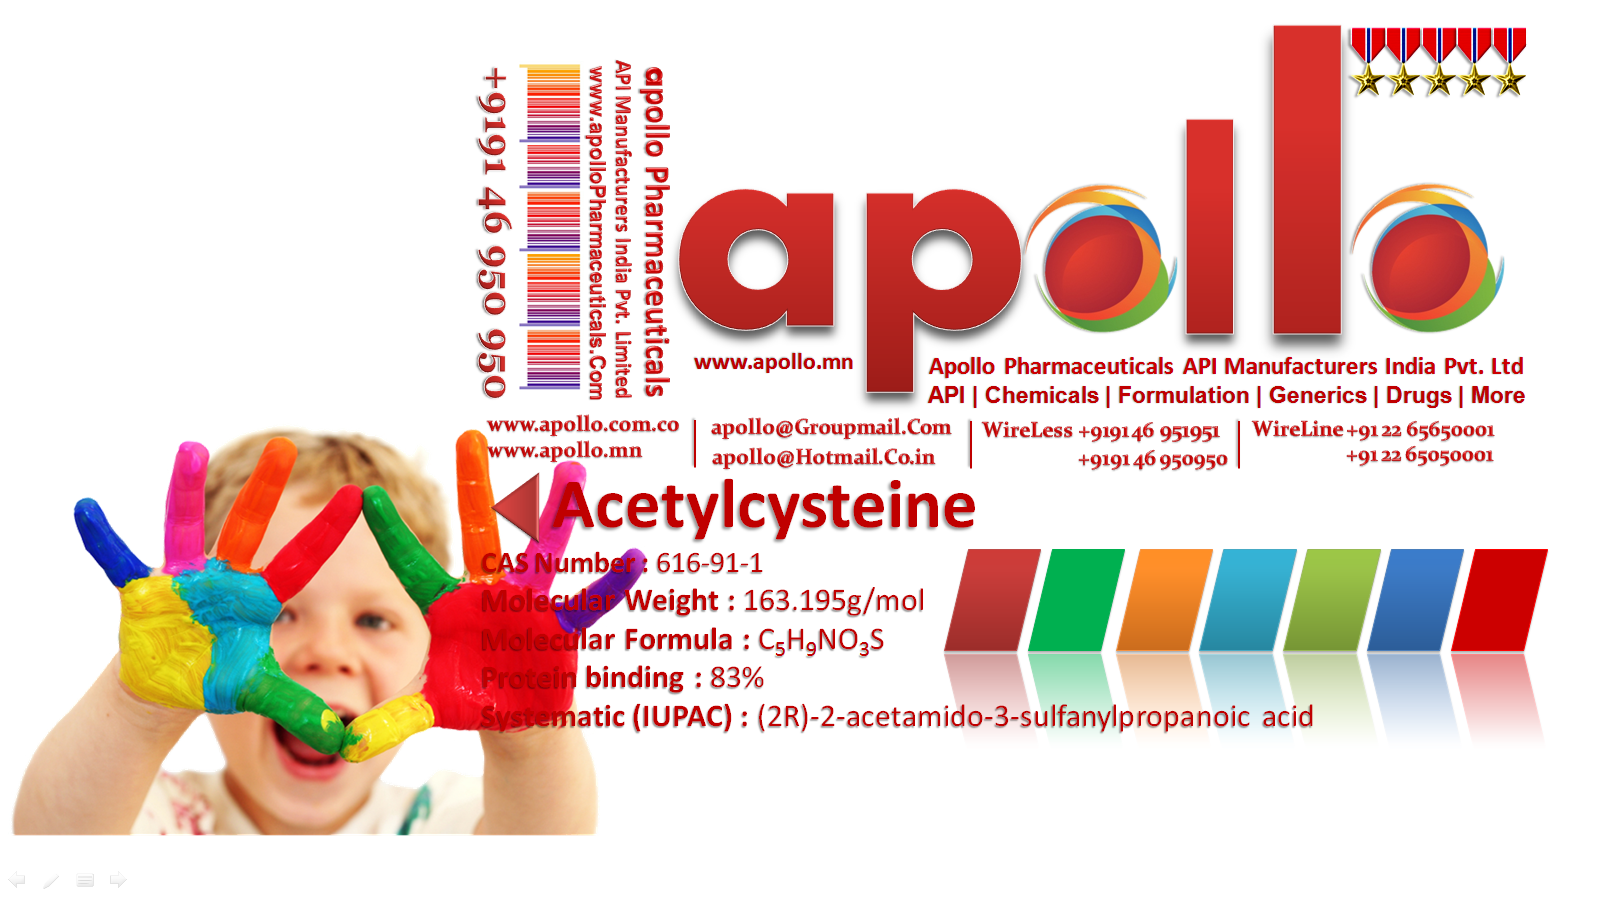 Acetylcysteine | apollo | +919146950950